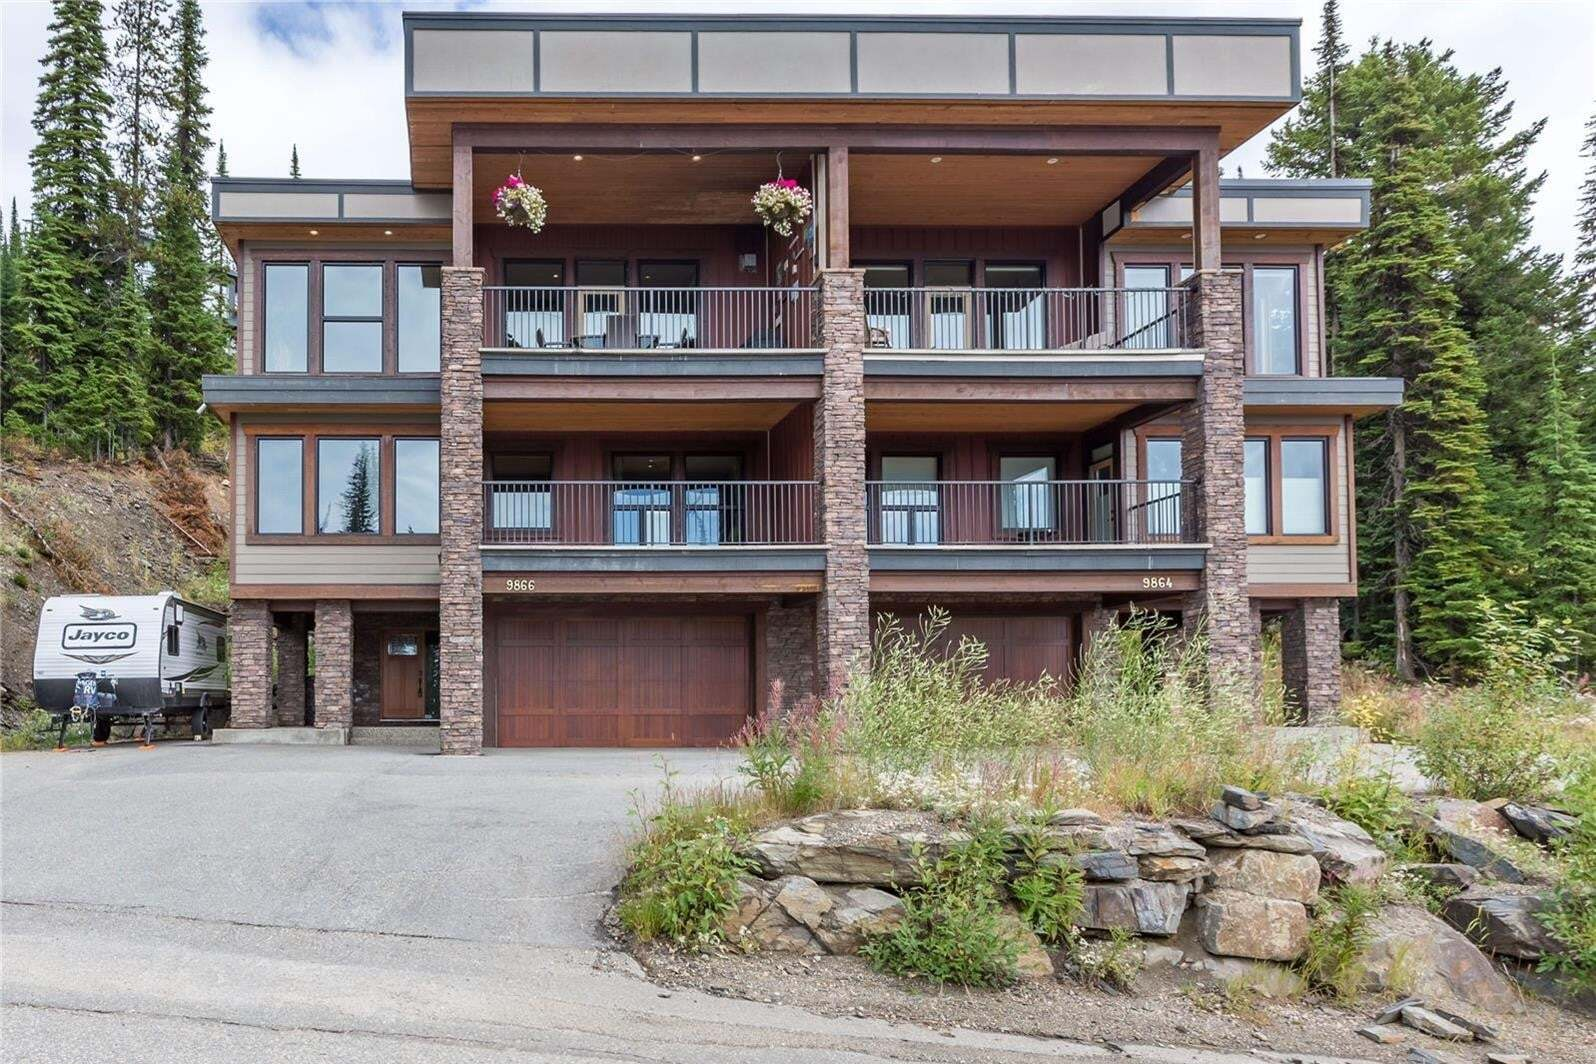 Townhouse for sale at 9866 Cathedral Dr Silver Star British Columbia - MLS: 10212537